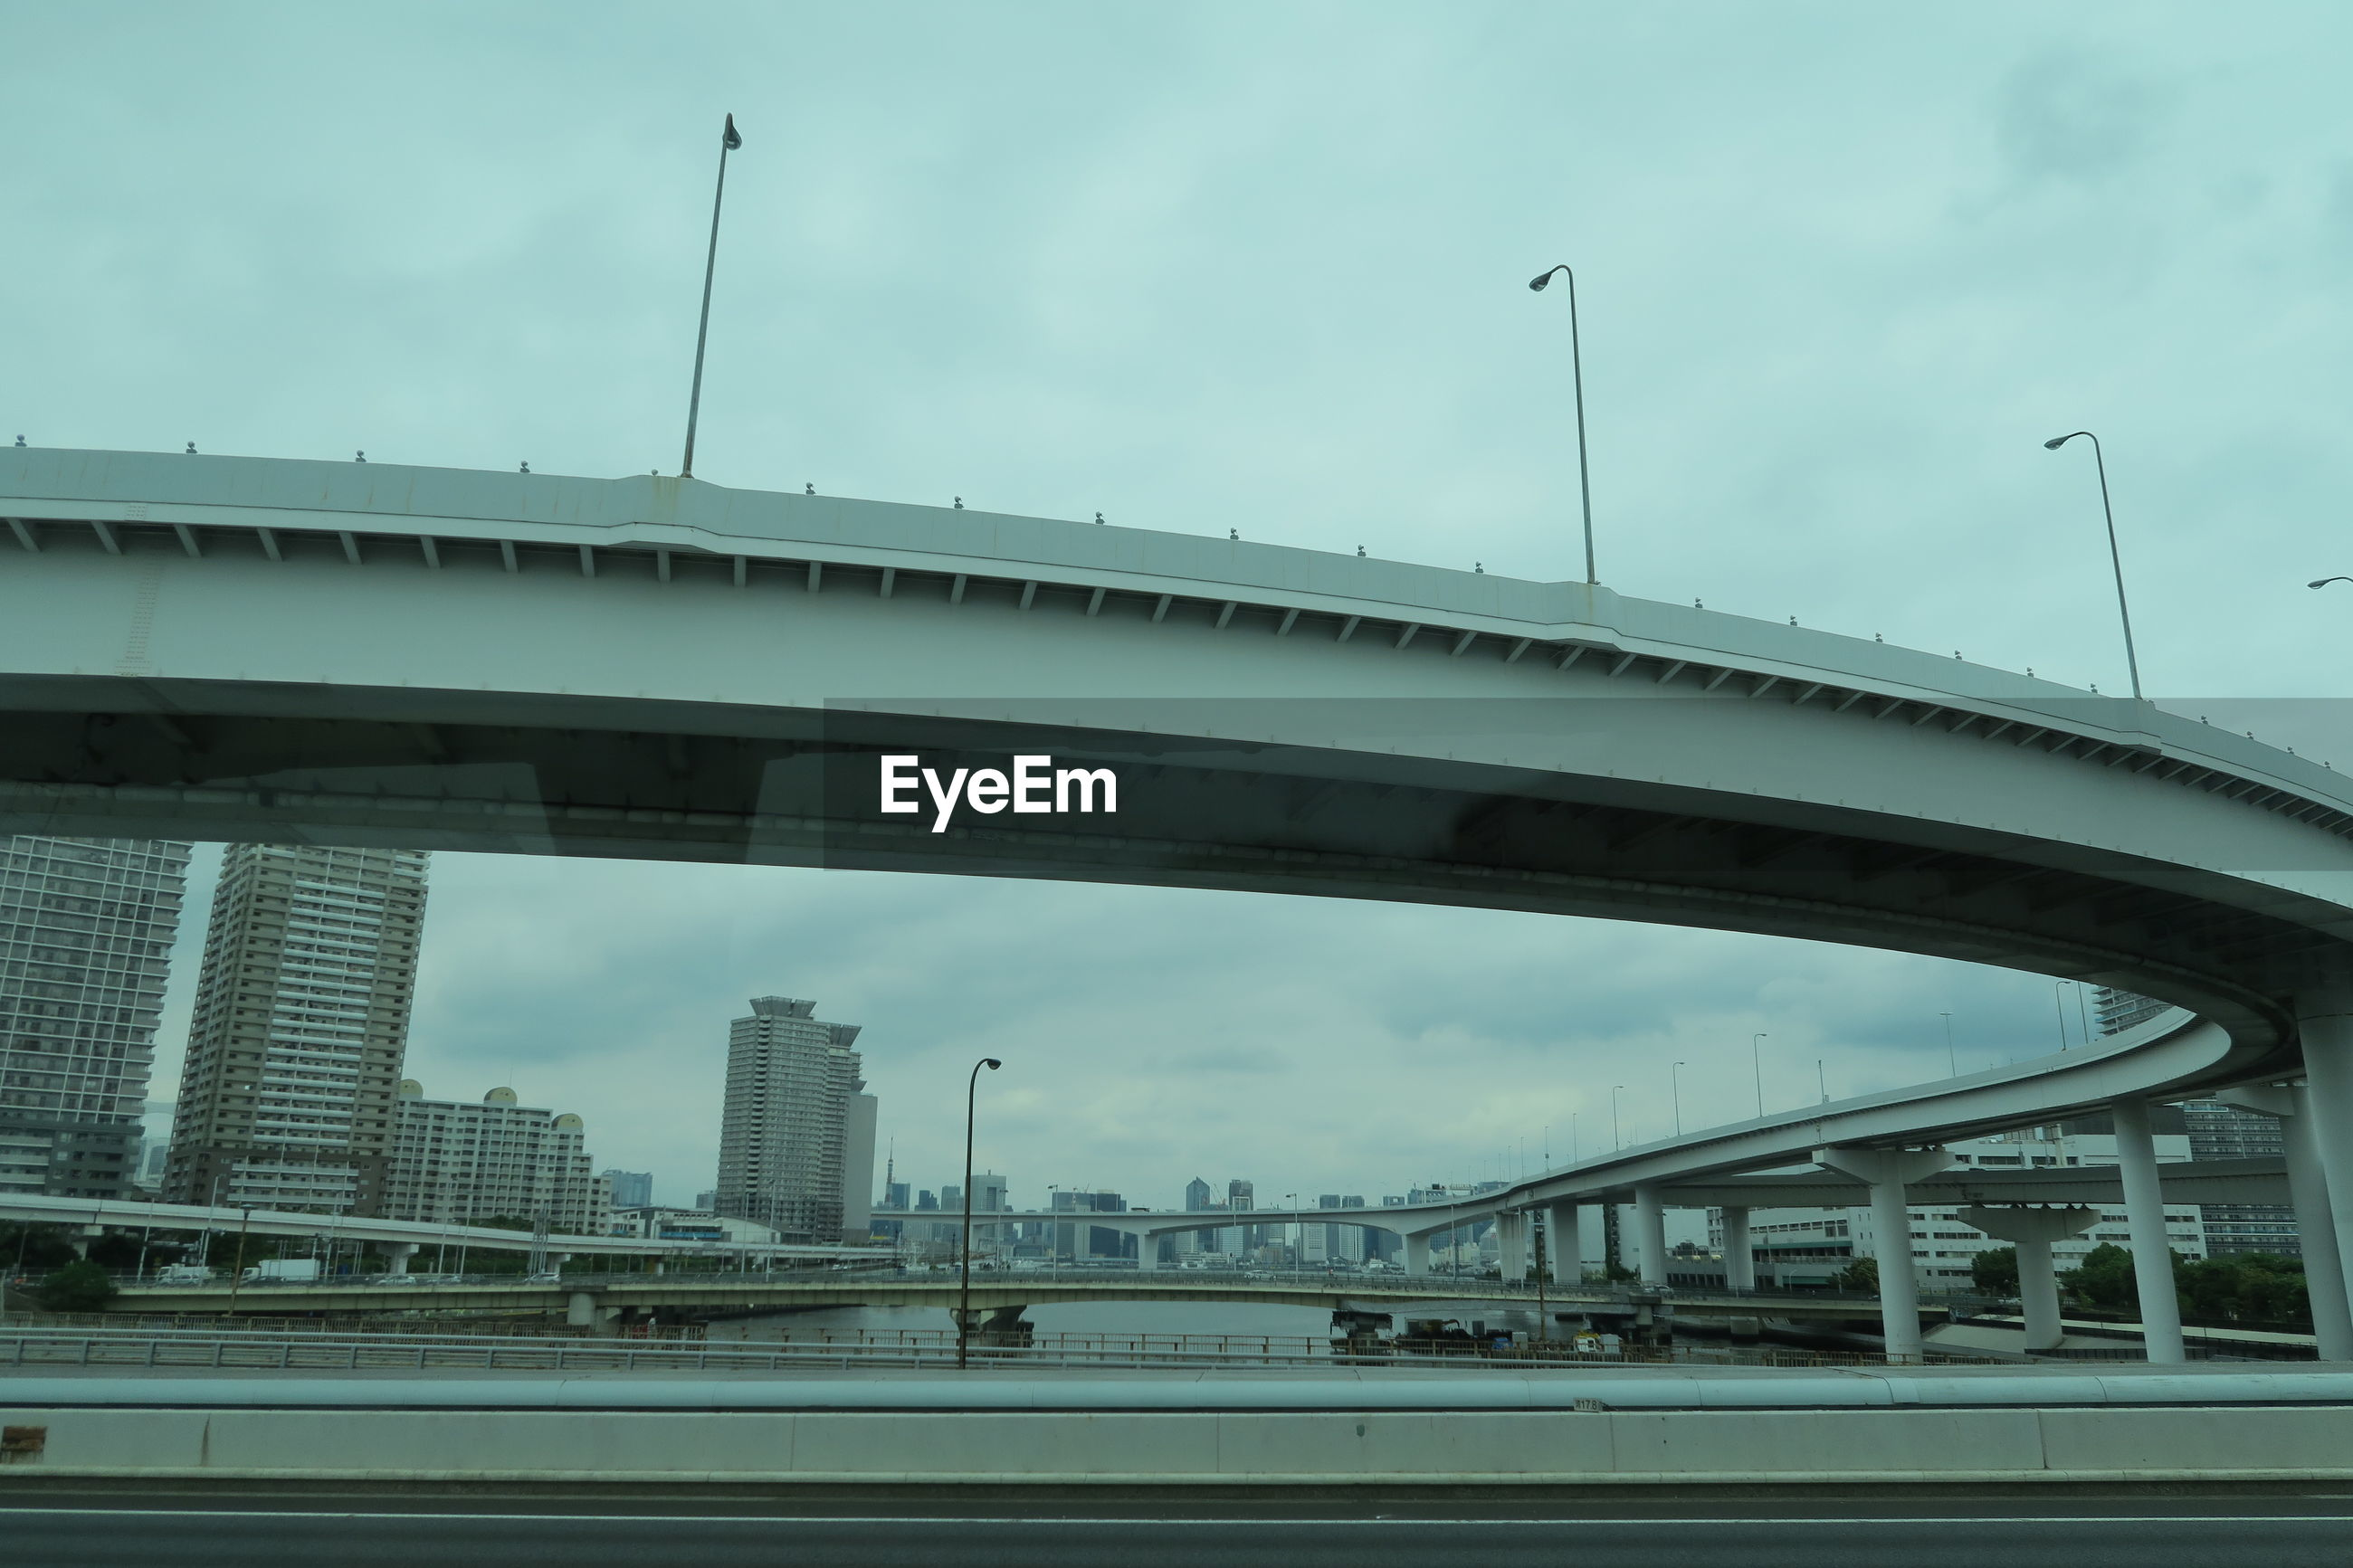 LOW ANGLE VIEW OF ELEVATED ROAD AGAINST CLOUDY SKY